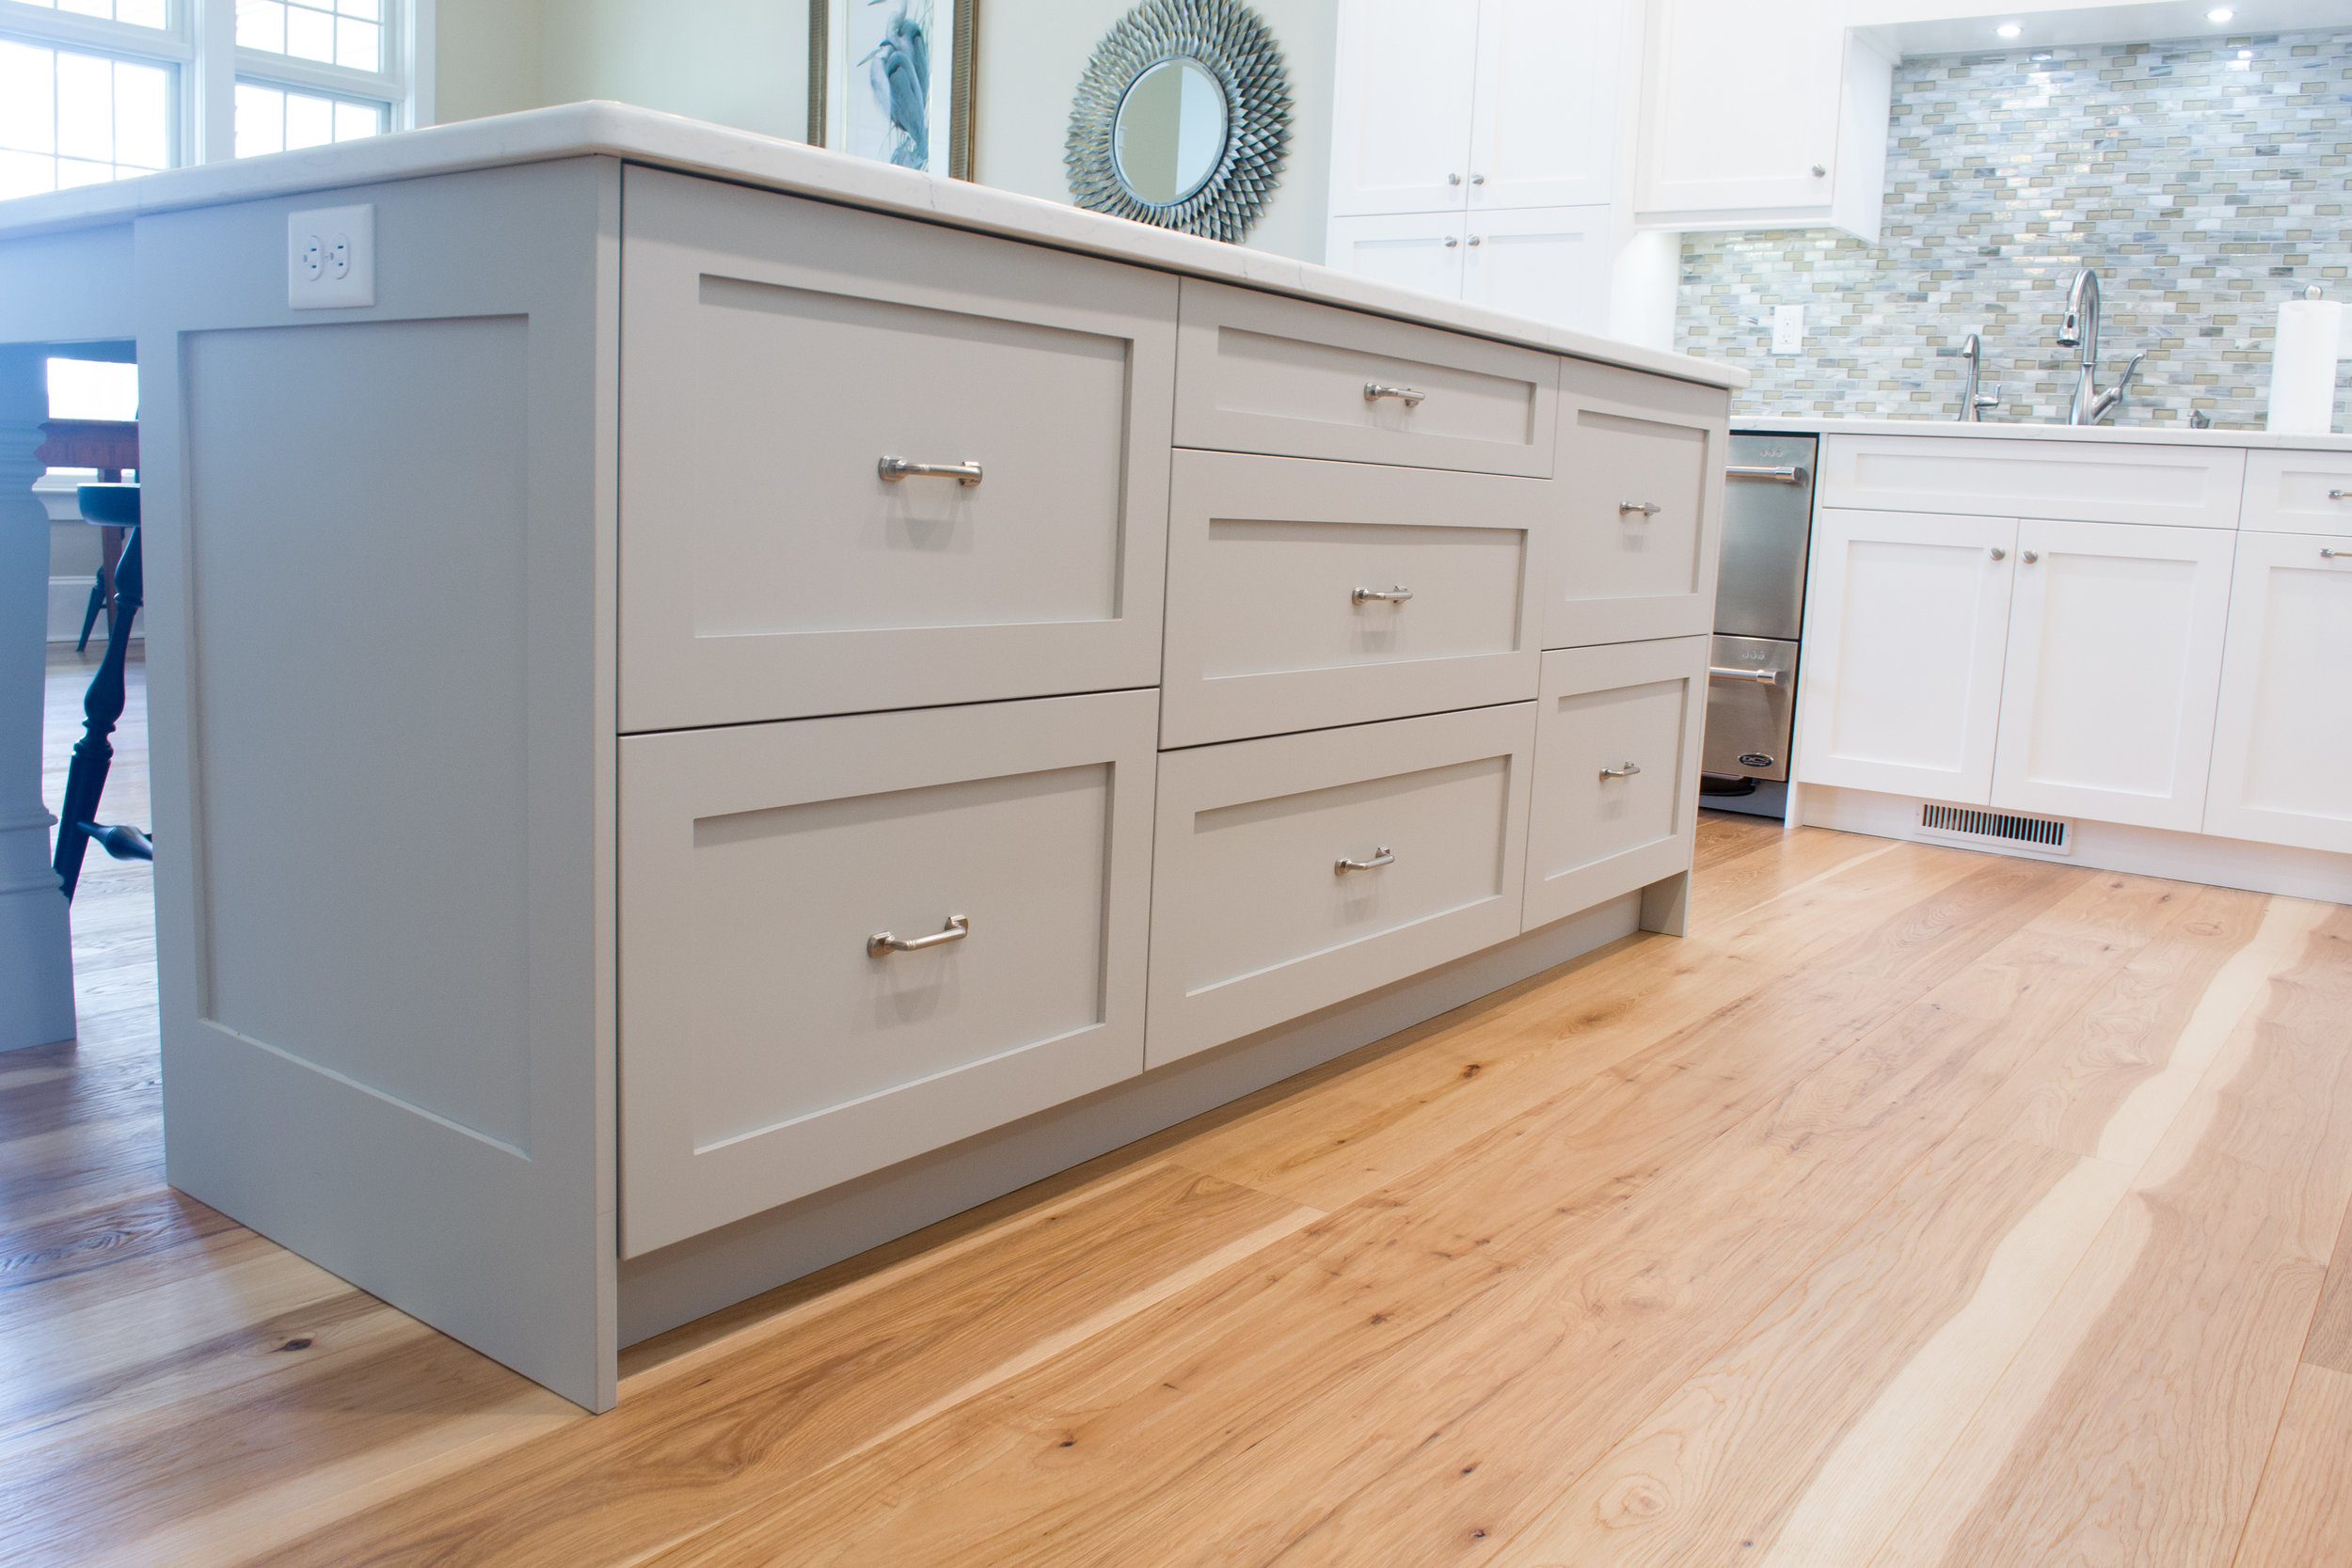 White painted kitchen with a grey island deep drawers and hidden organization